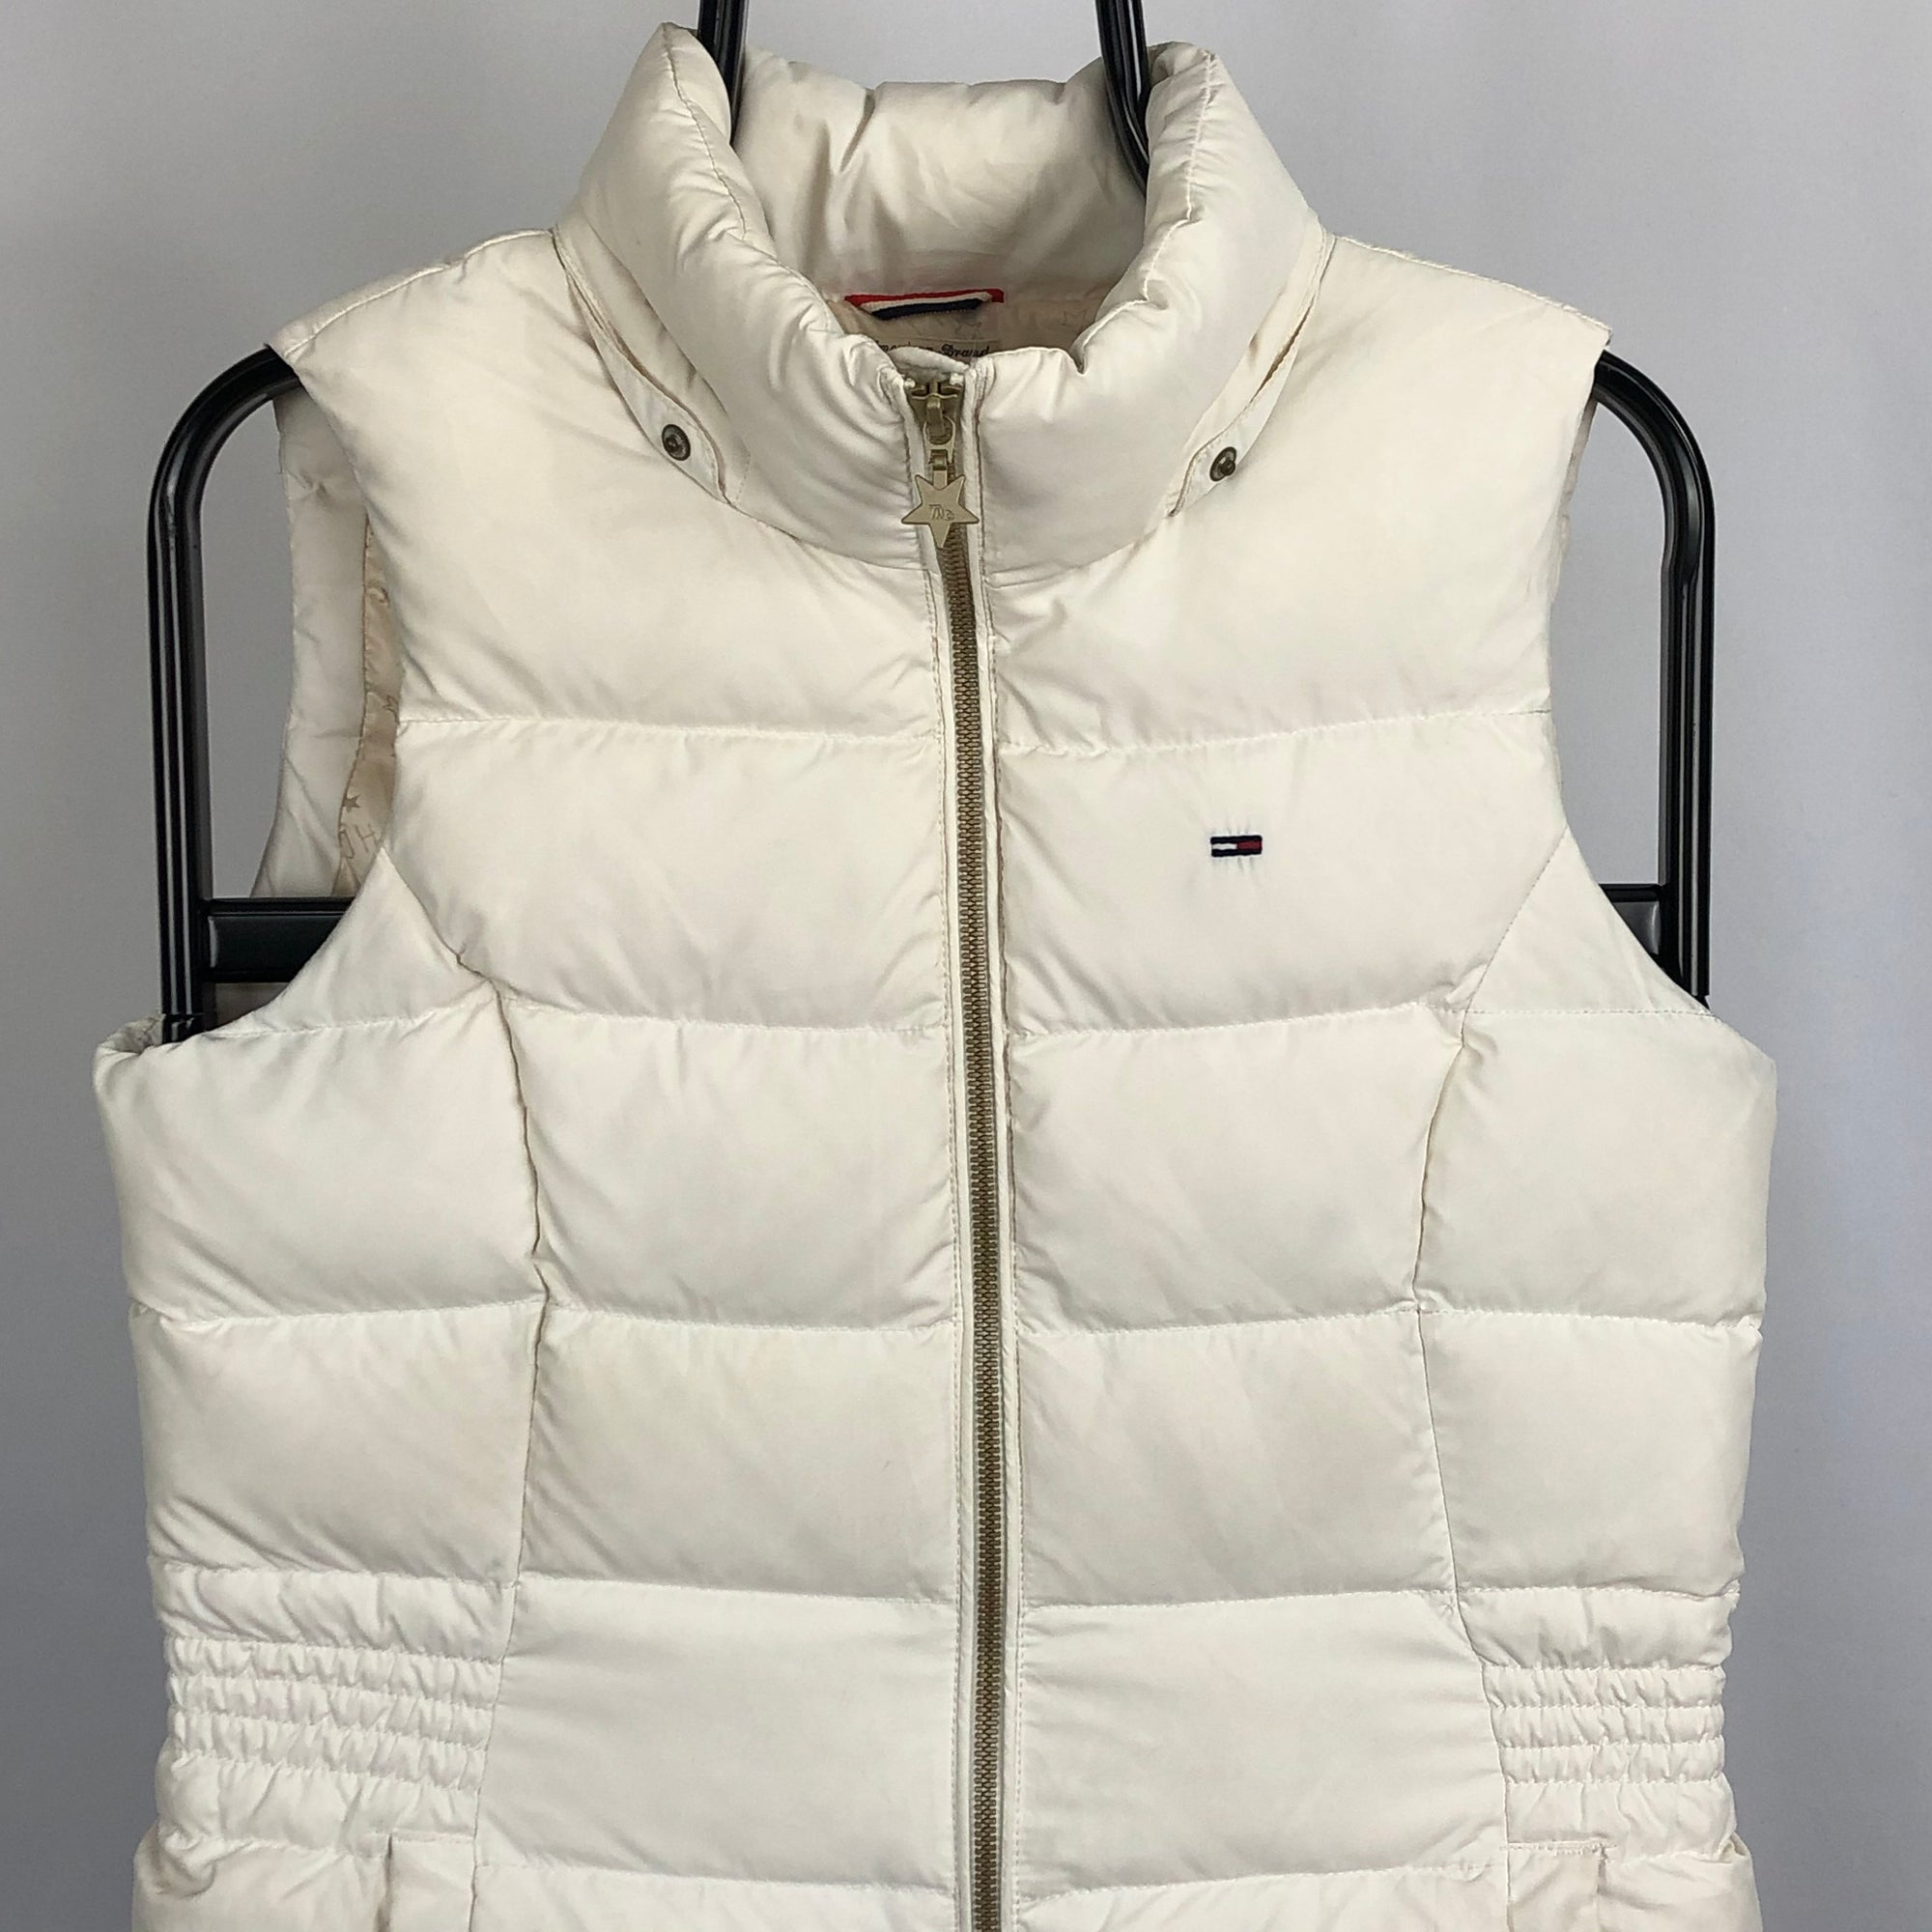 Tommy Hilfiger Gilet in White - Men's Small/Women's Medium